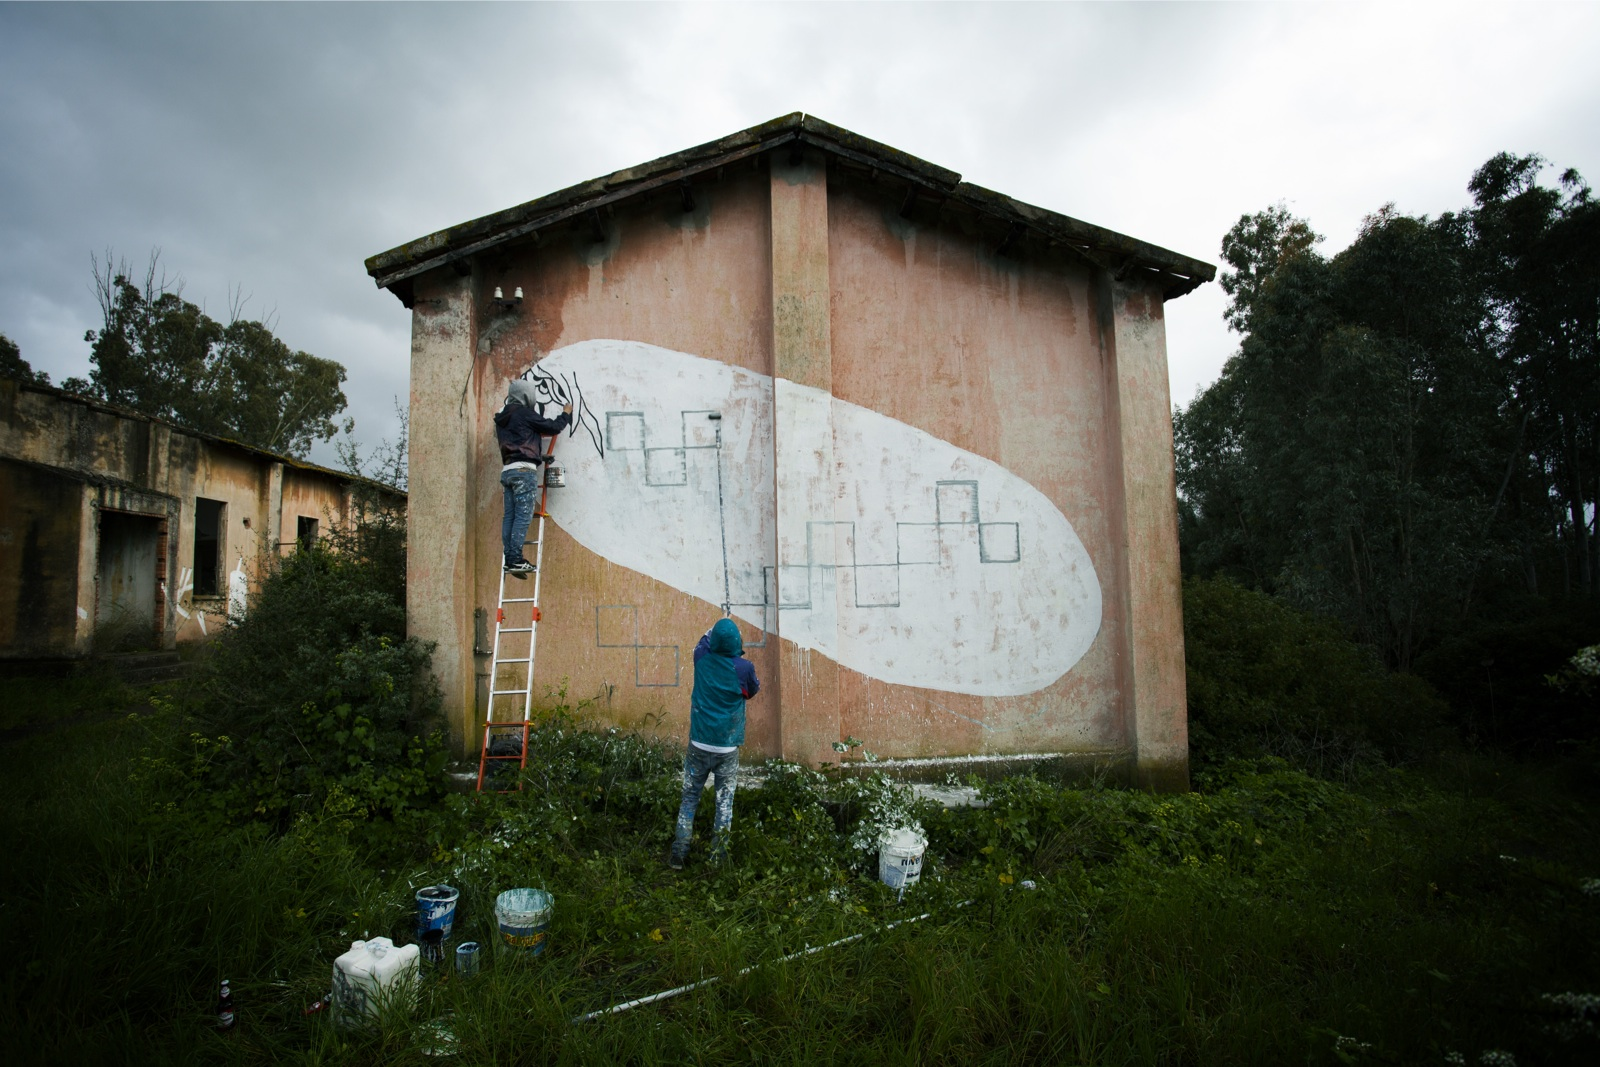 tellas-alberonero-new-mural-in-sardinia-01